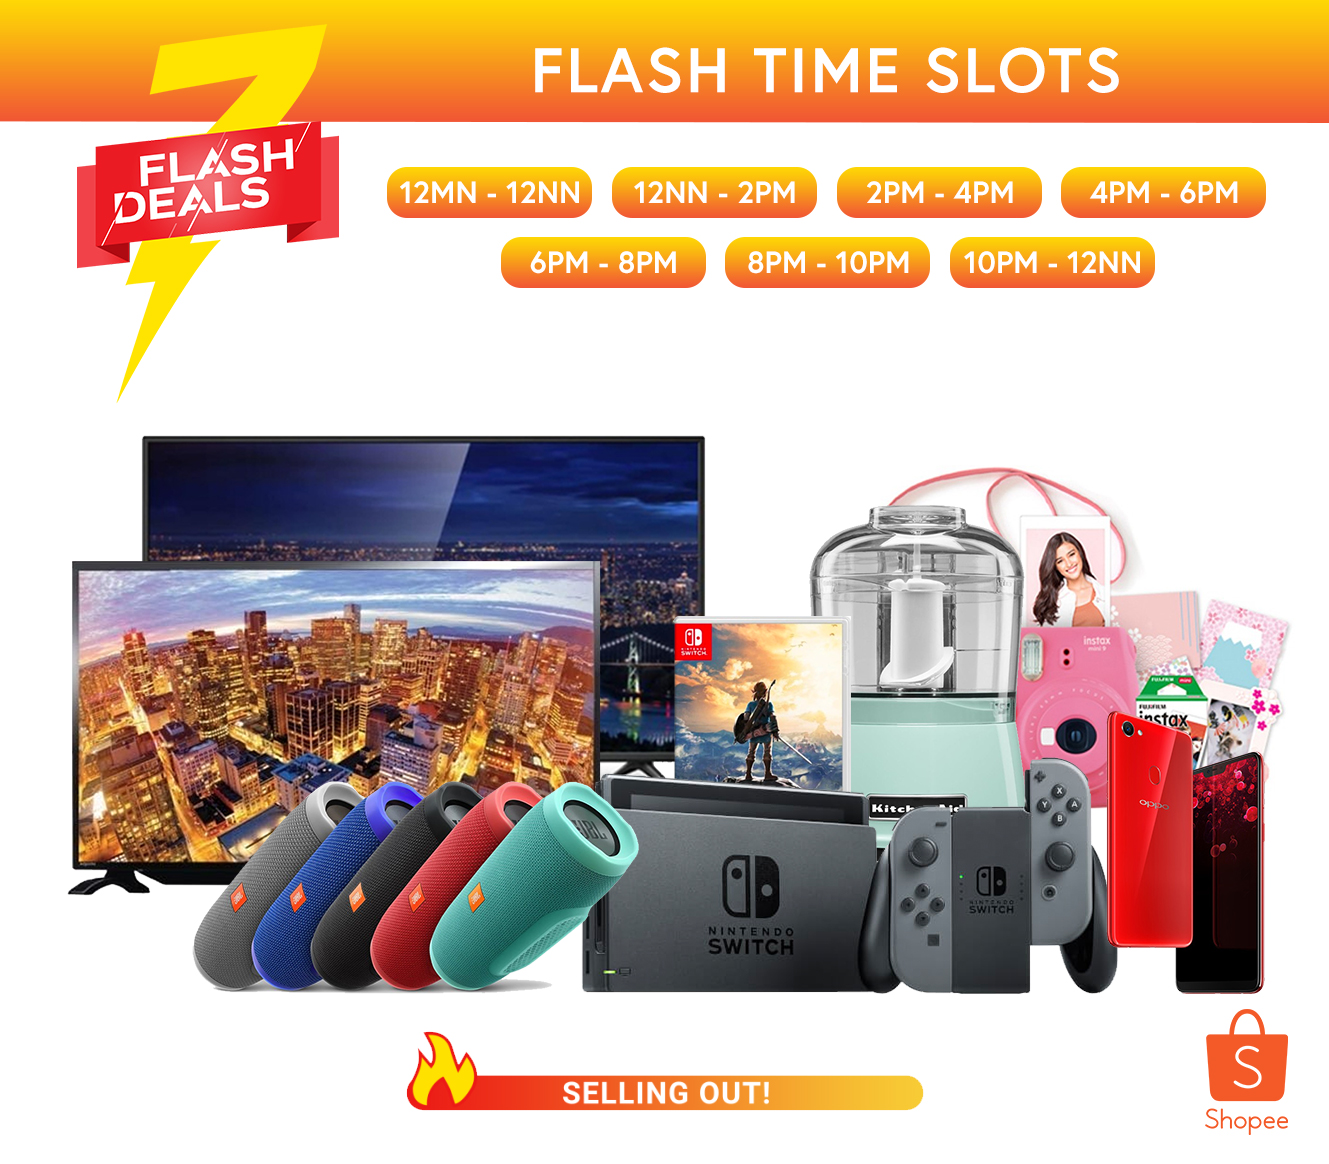 Score the Nintendo Switch, Oppo F7, and HD TVs at Shopee's